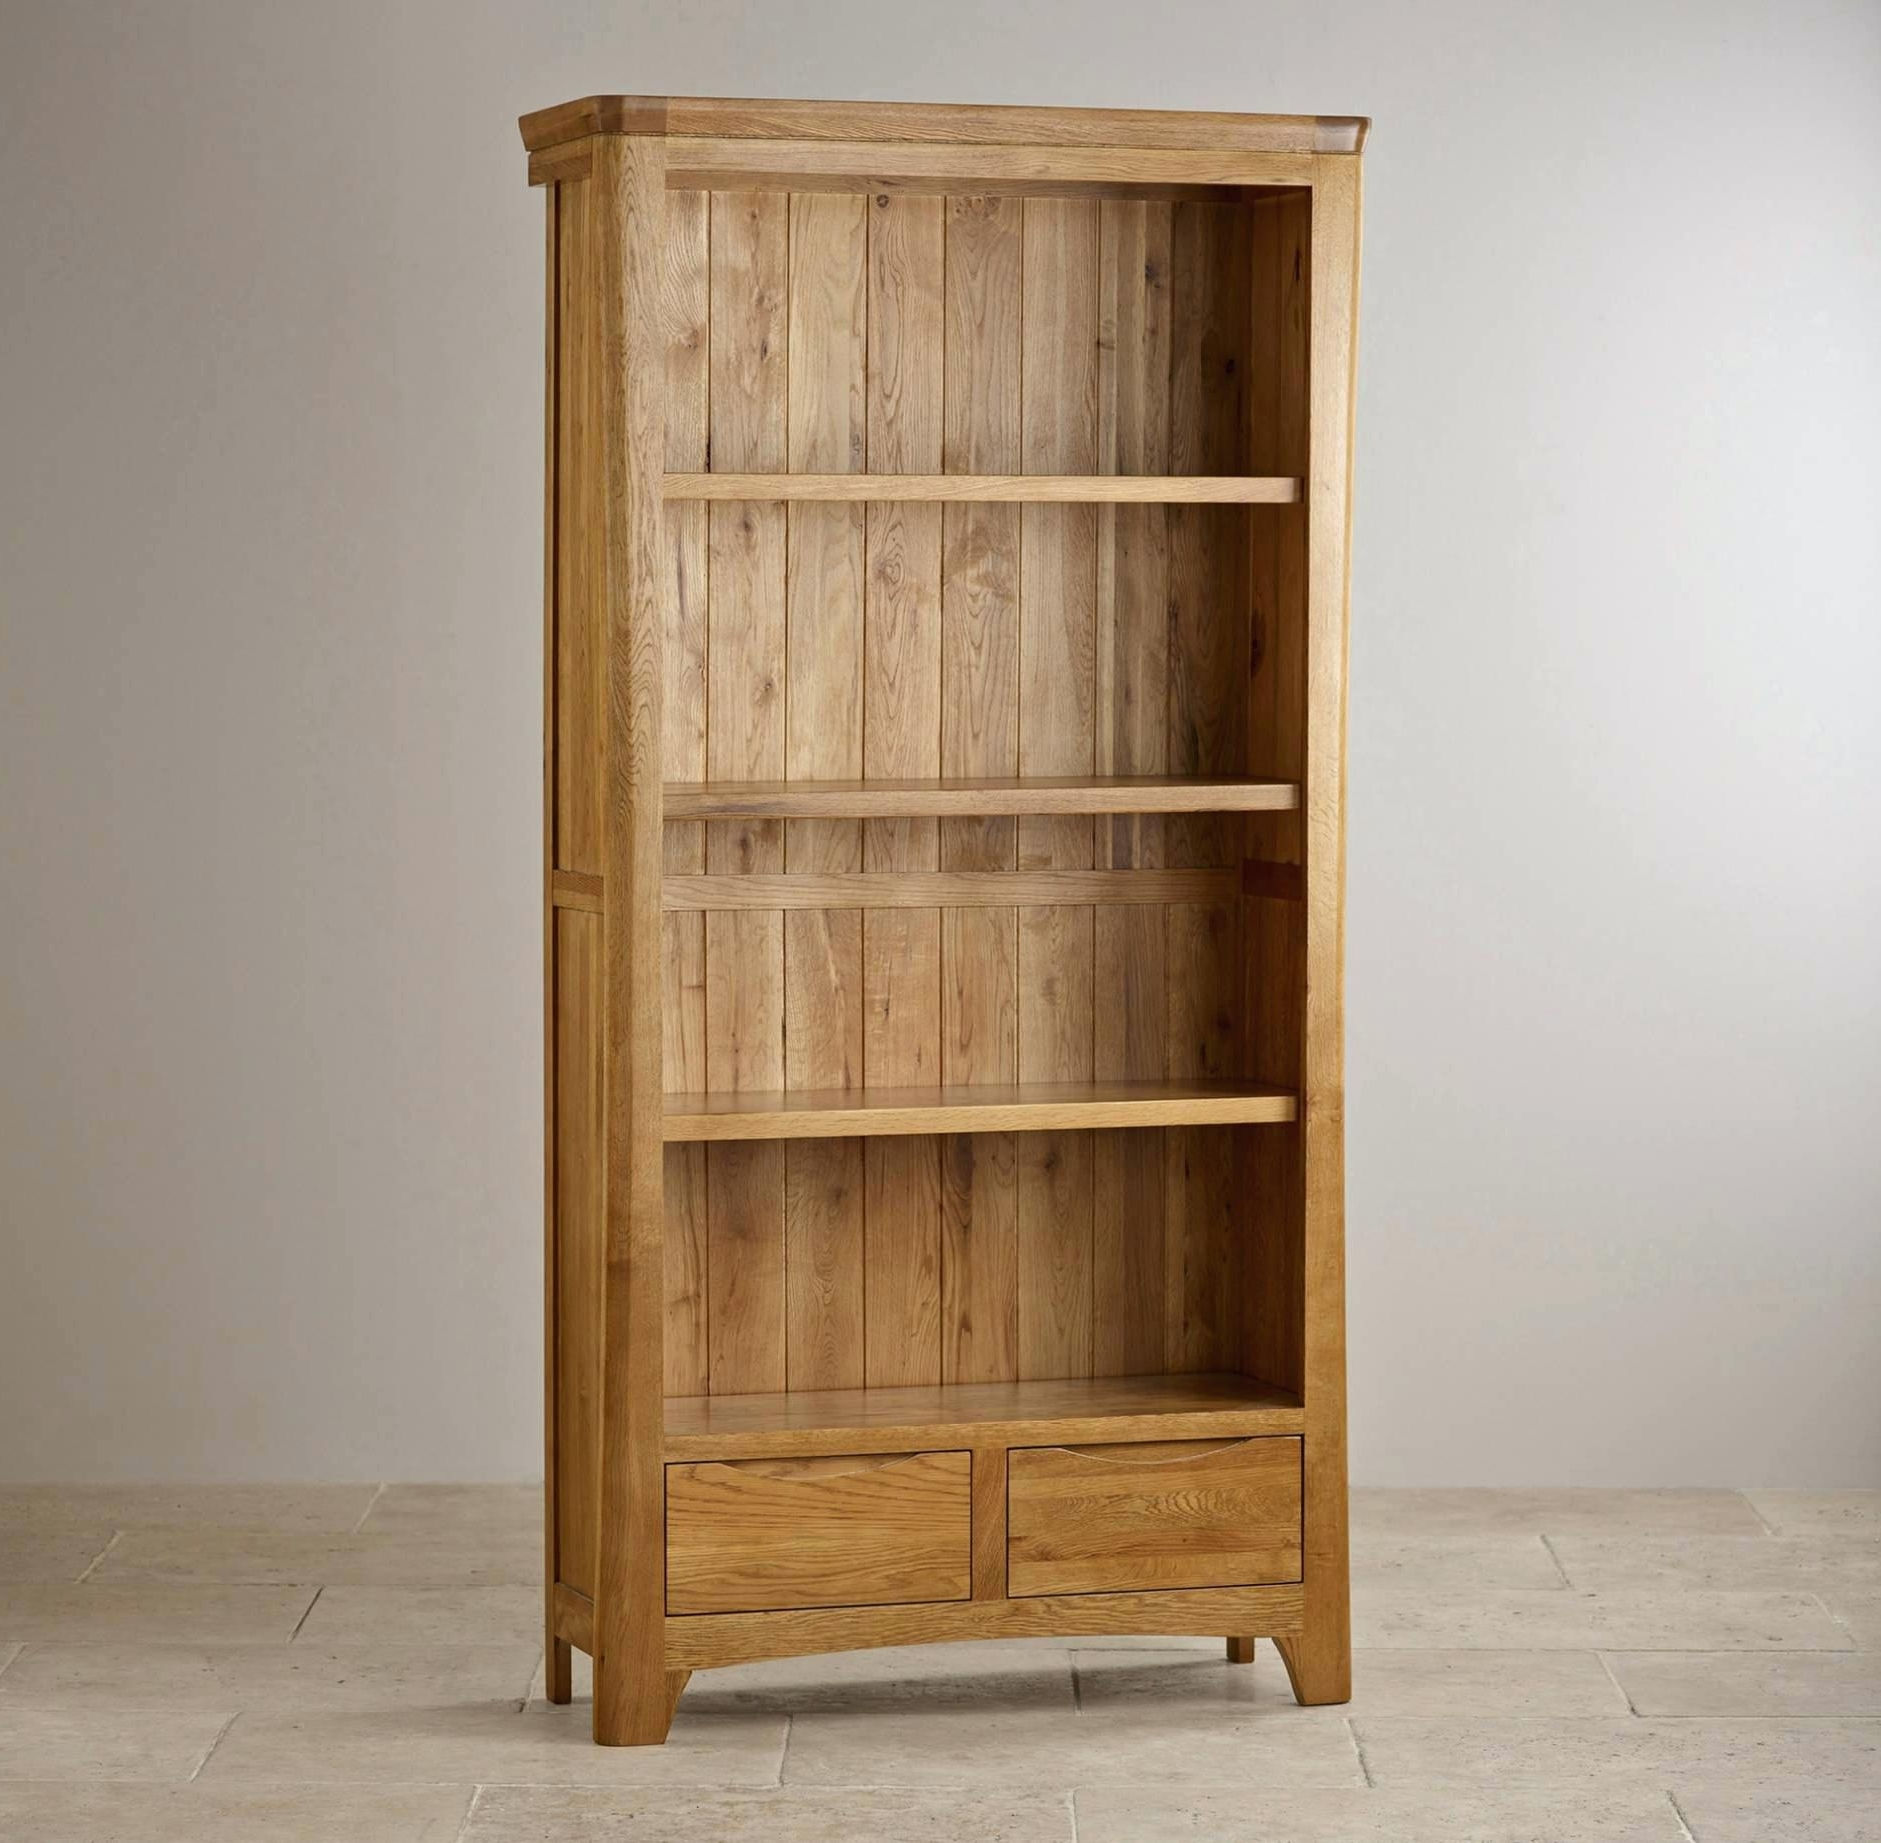 Popular Wooden Bookcases Intended For Wooden Bookcases Cherry Wood Bookcases For Sale Wooden Bookcases (View 10 of 15)